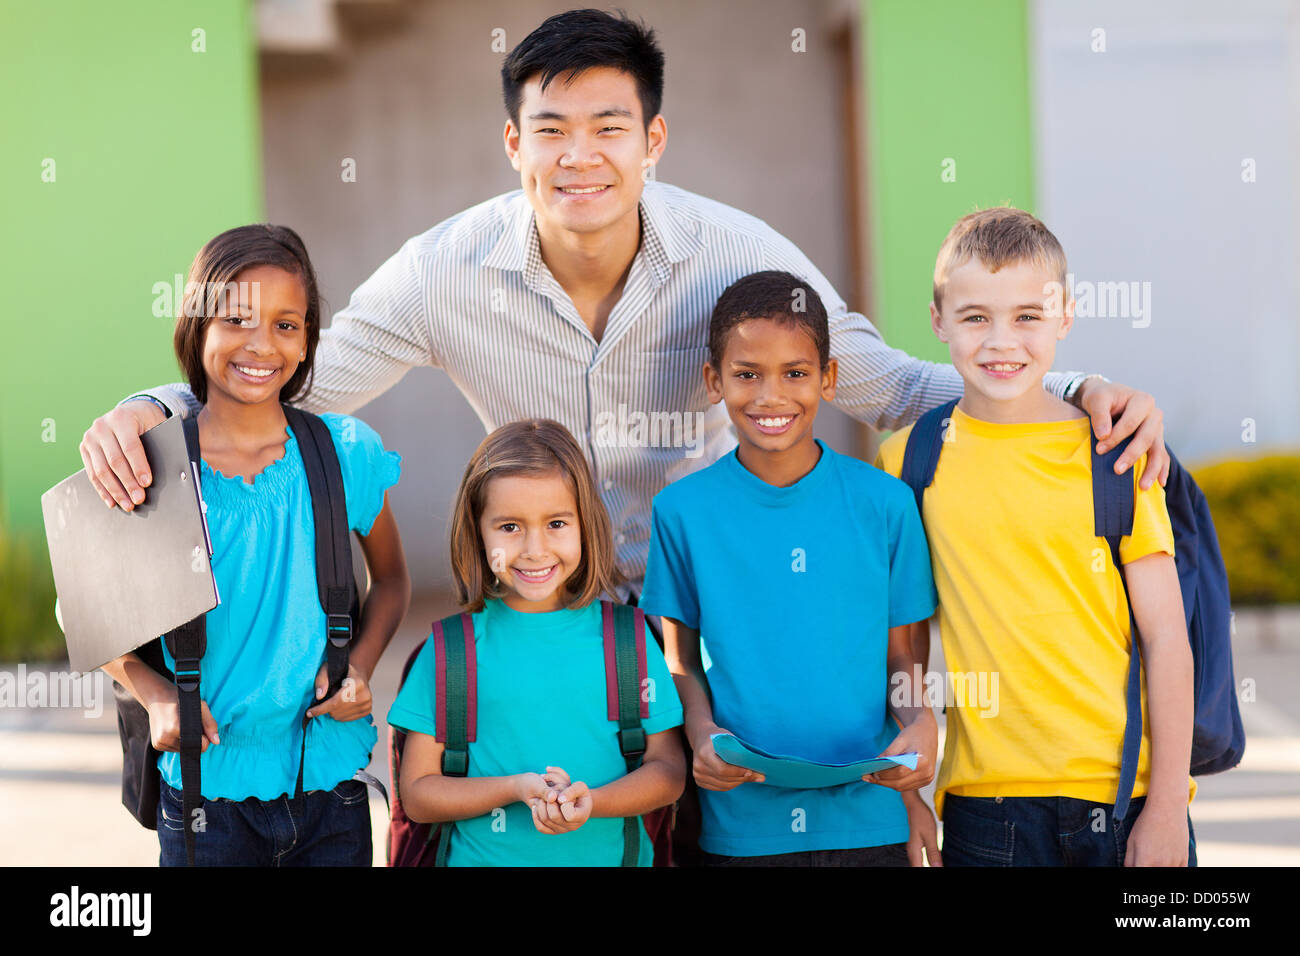 four elementary school students and teacher on campus - Stock Image